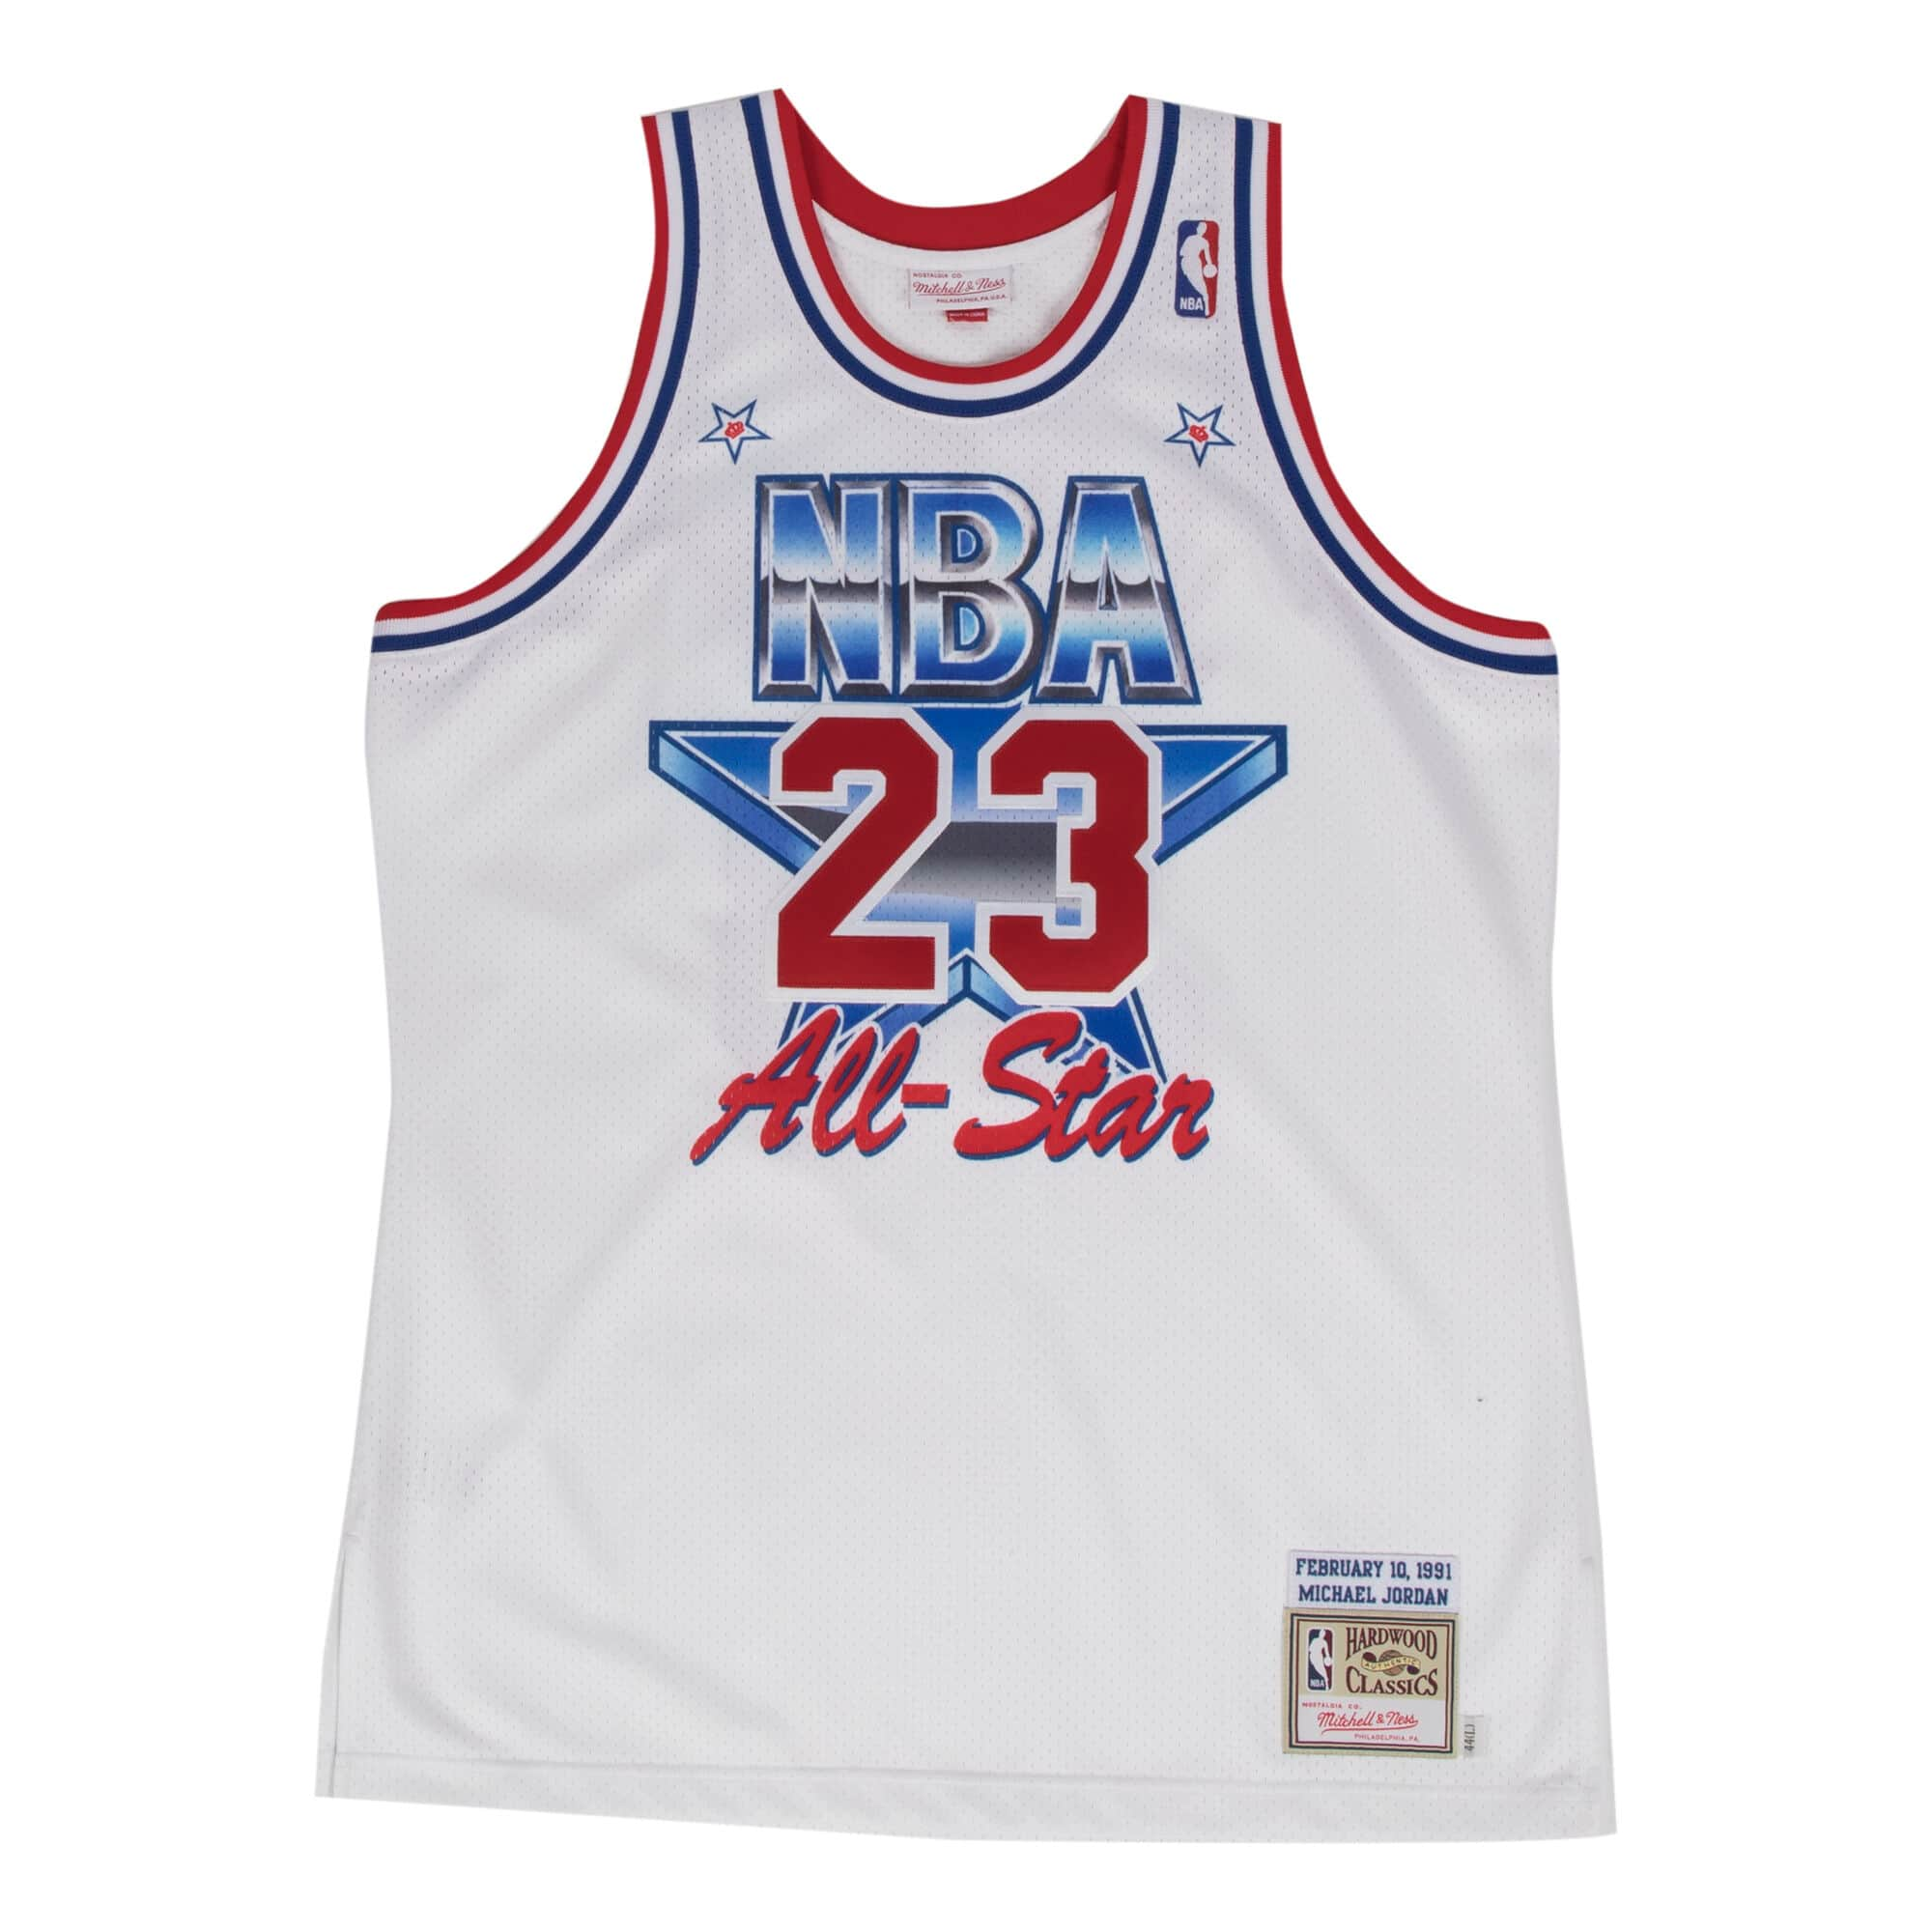 MITCHELL & NESS NBA ALL STAR EAST JERSEY 91 MICHAEL JORDAN